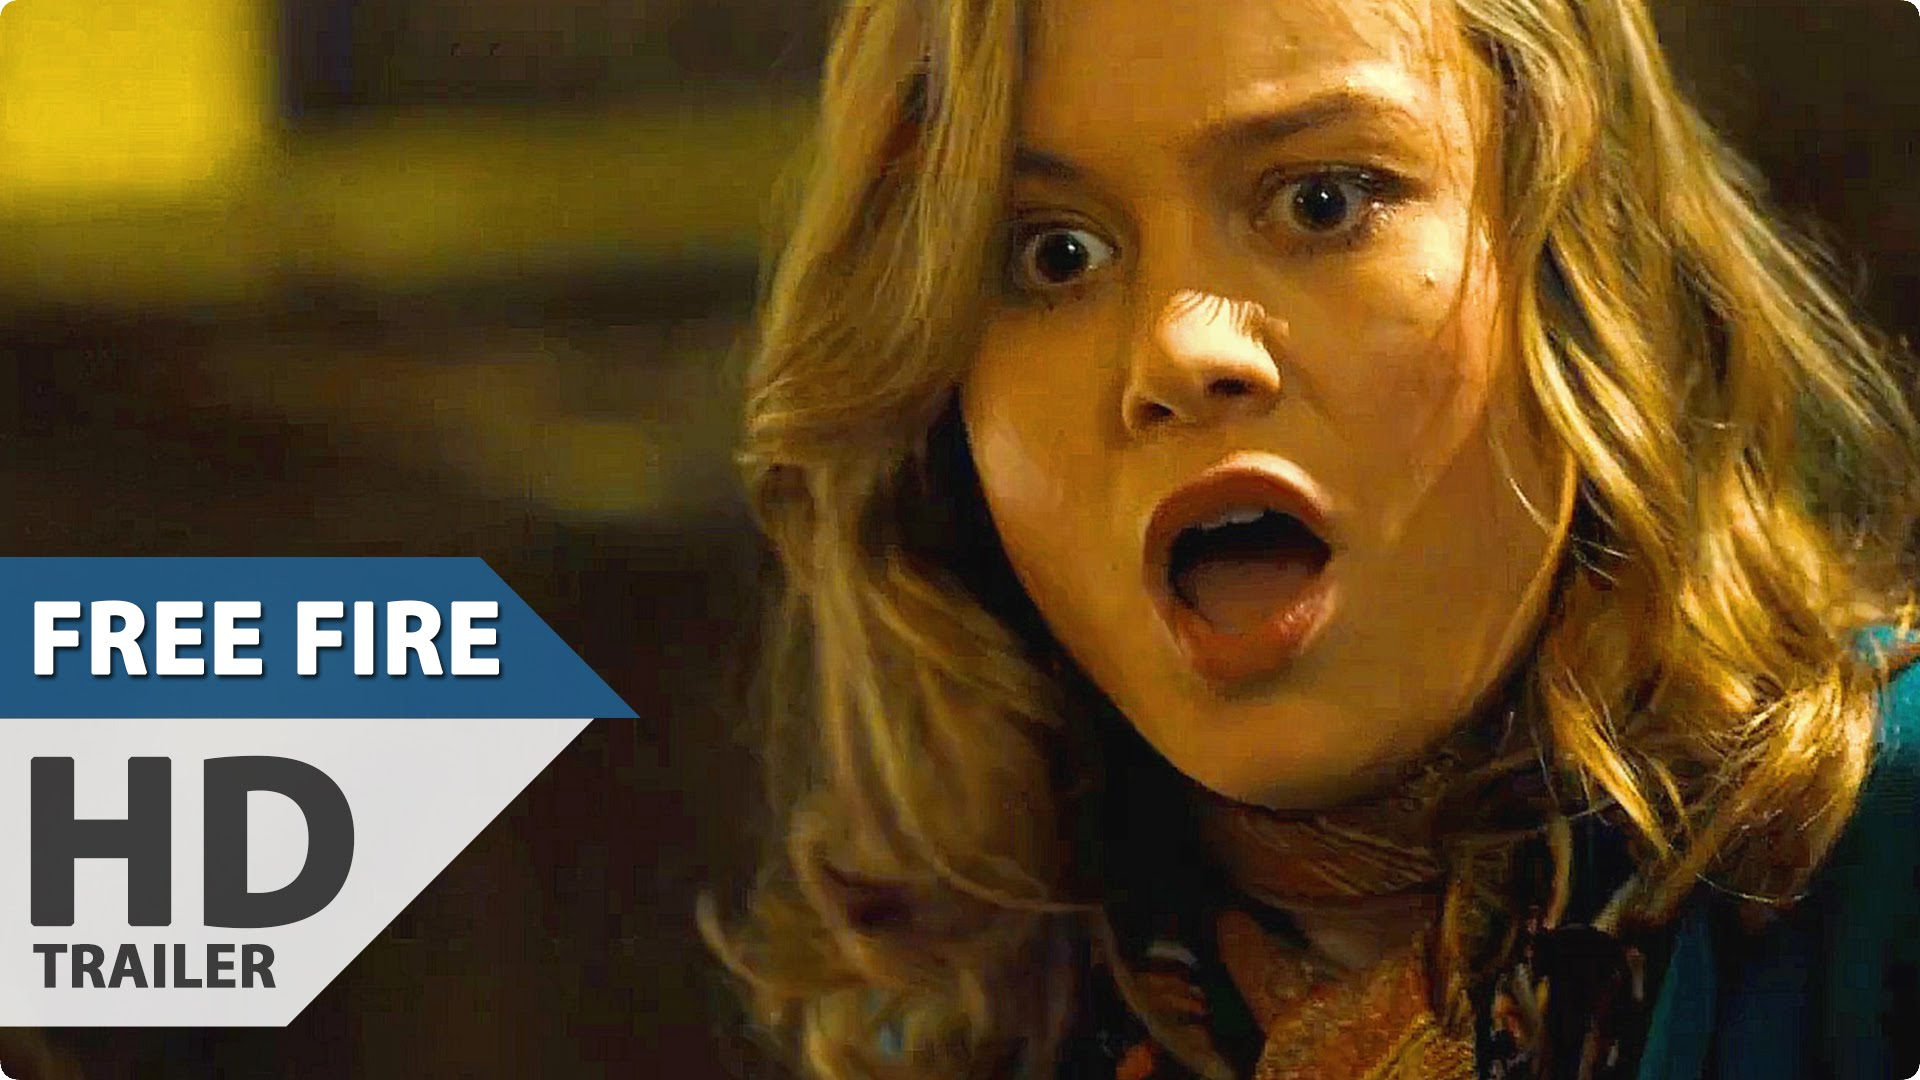 FREE FIRE Red Band Trailer (2016) Brie Larson Movie